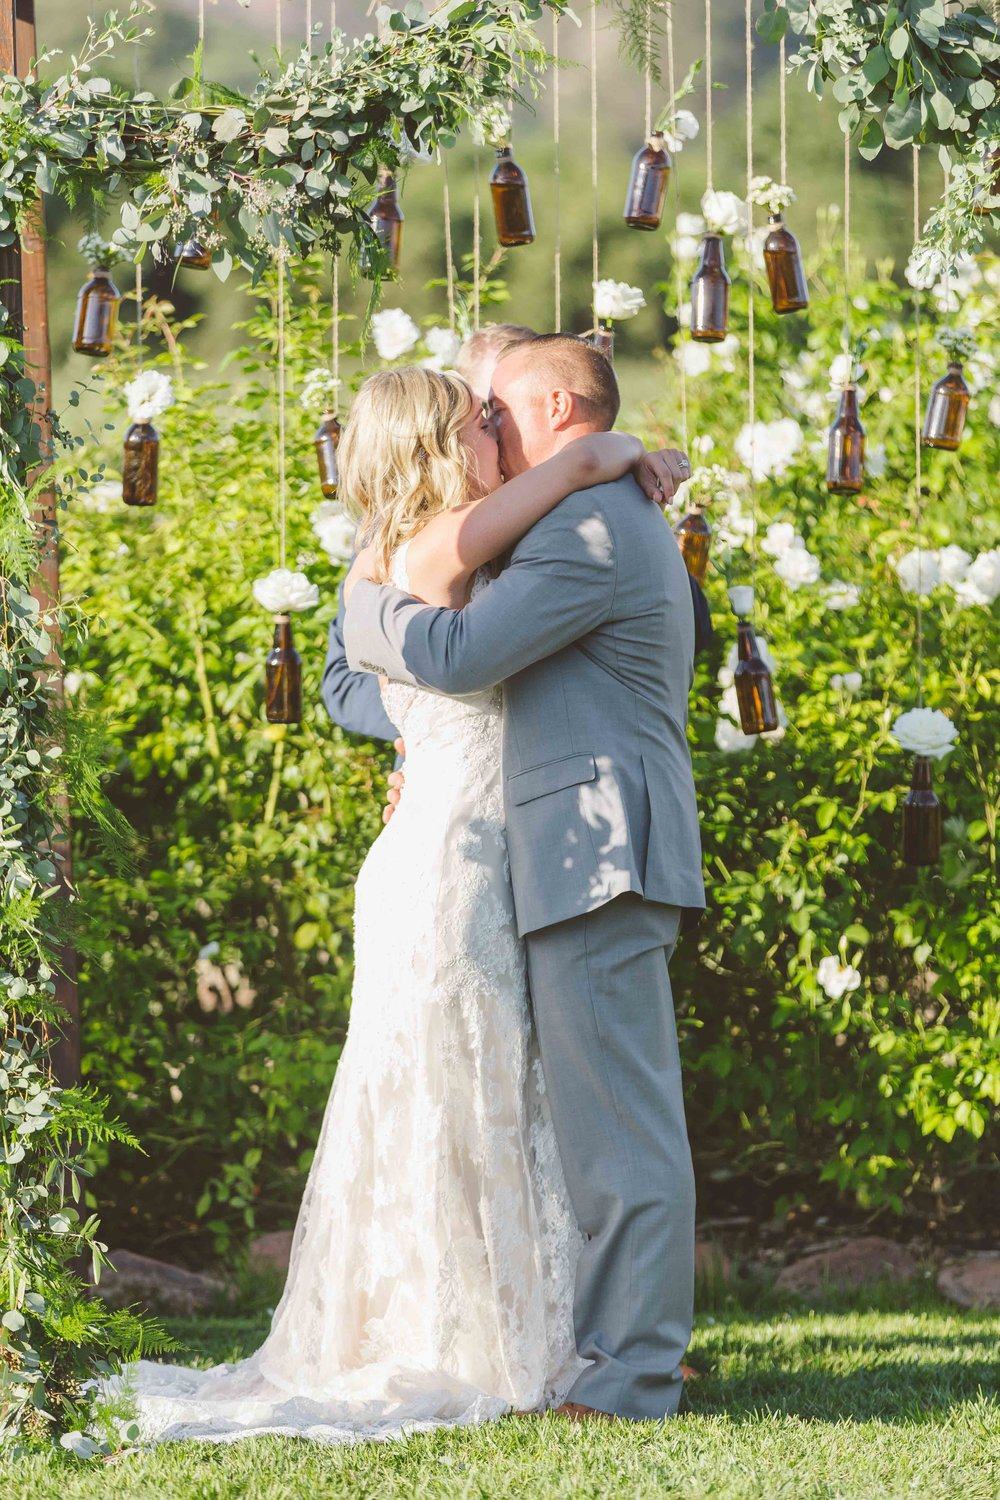 2015-Perkinson-Wedding-GerrysRanch-0152-web.jpg